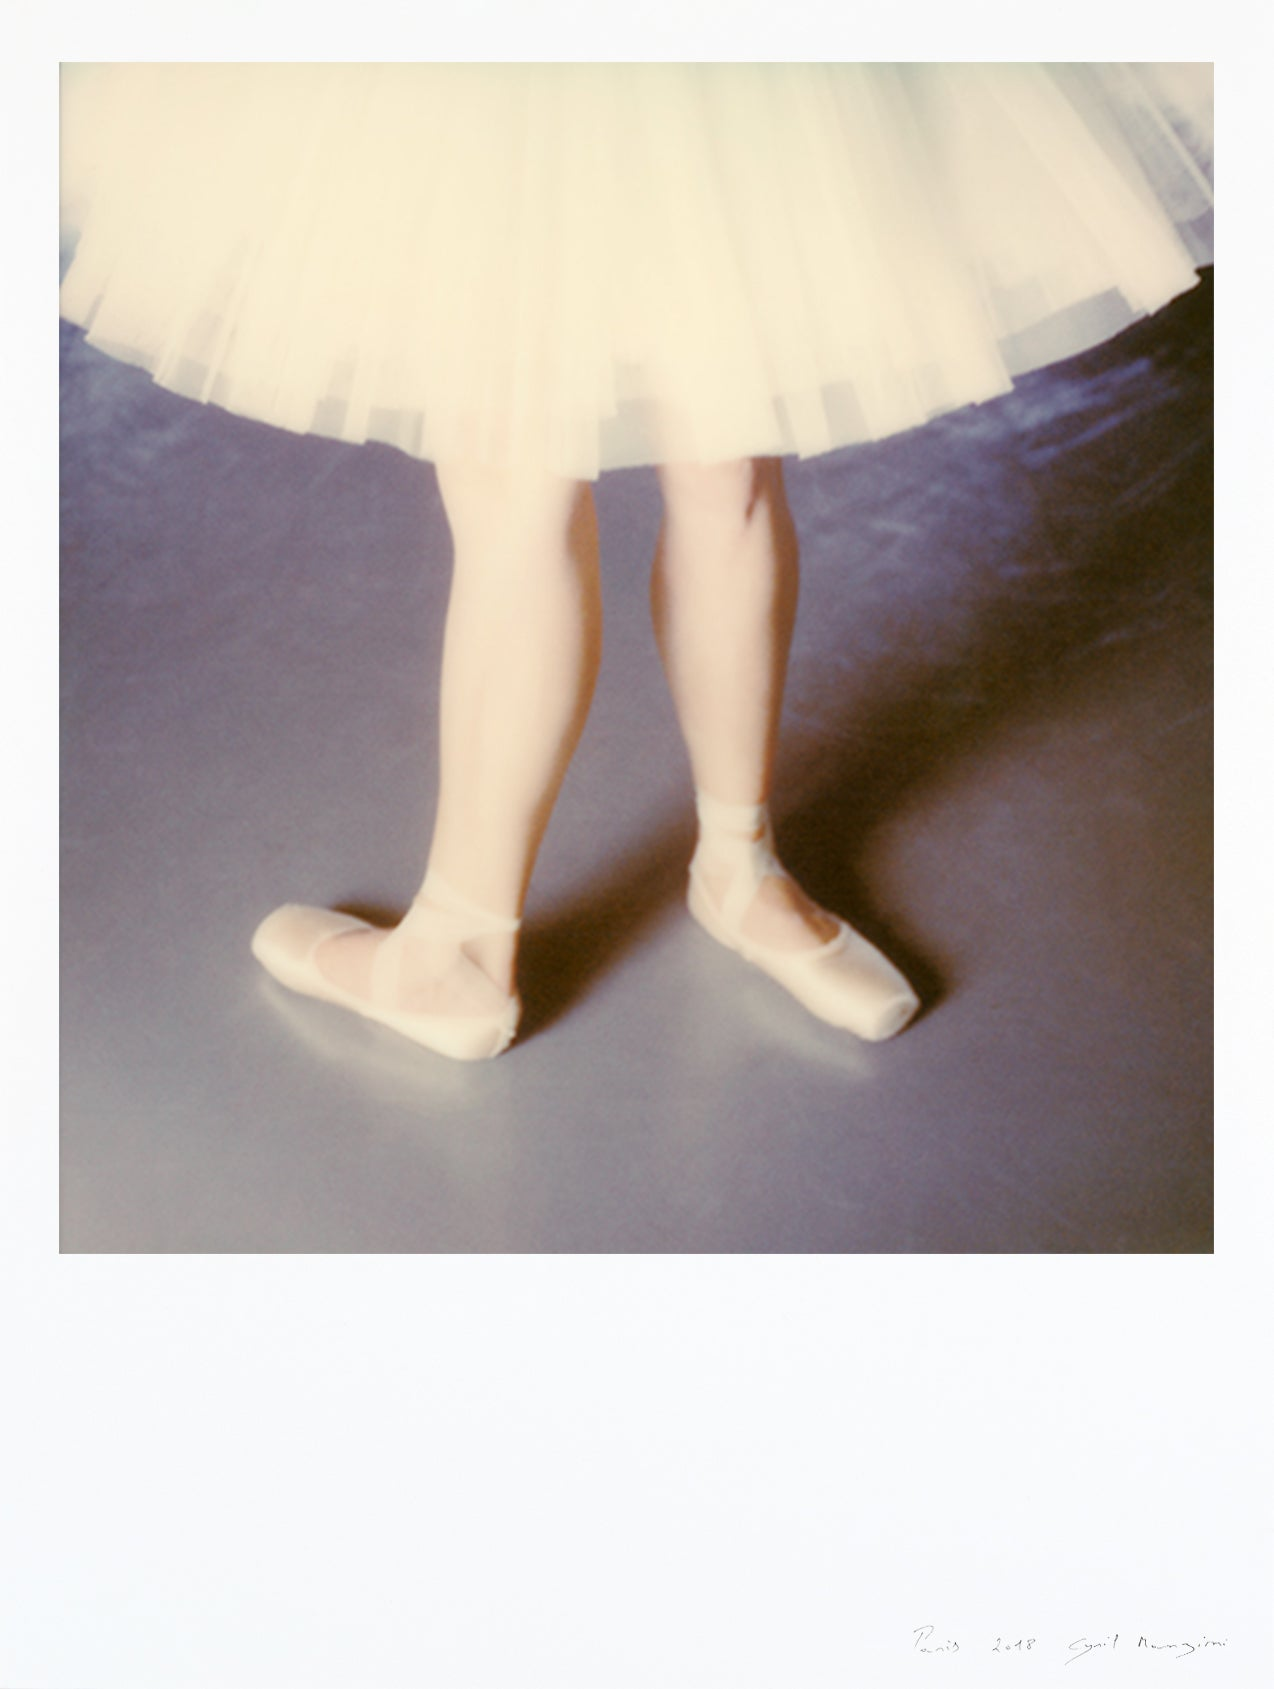 Impression-polaroid-danseuse-classique-30x40cm-grand-format-Opera-paris-deco